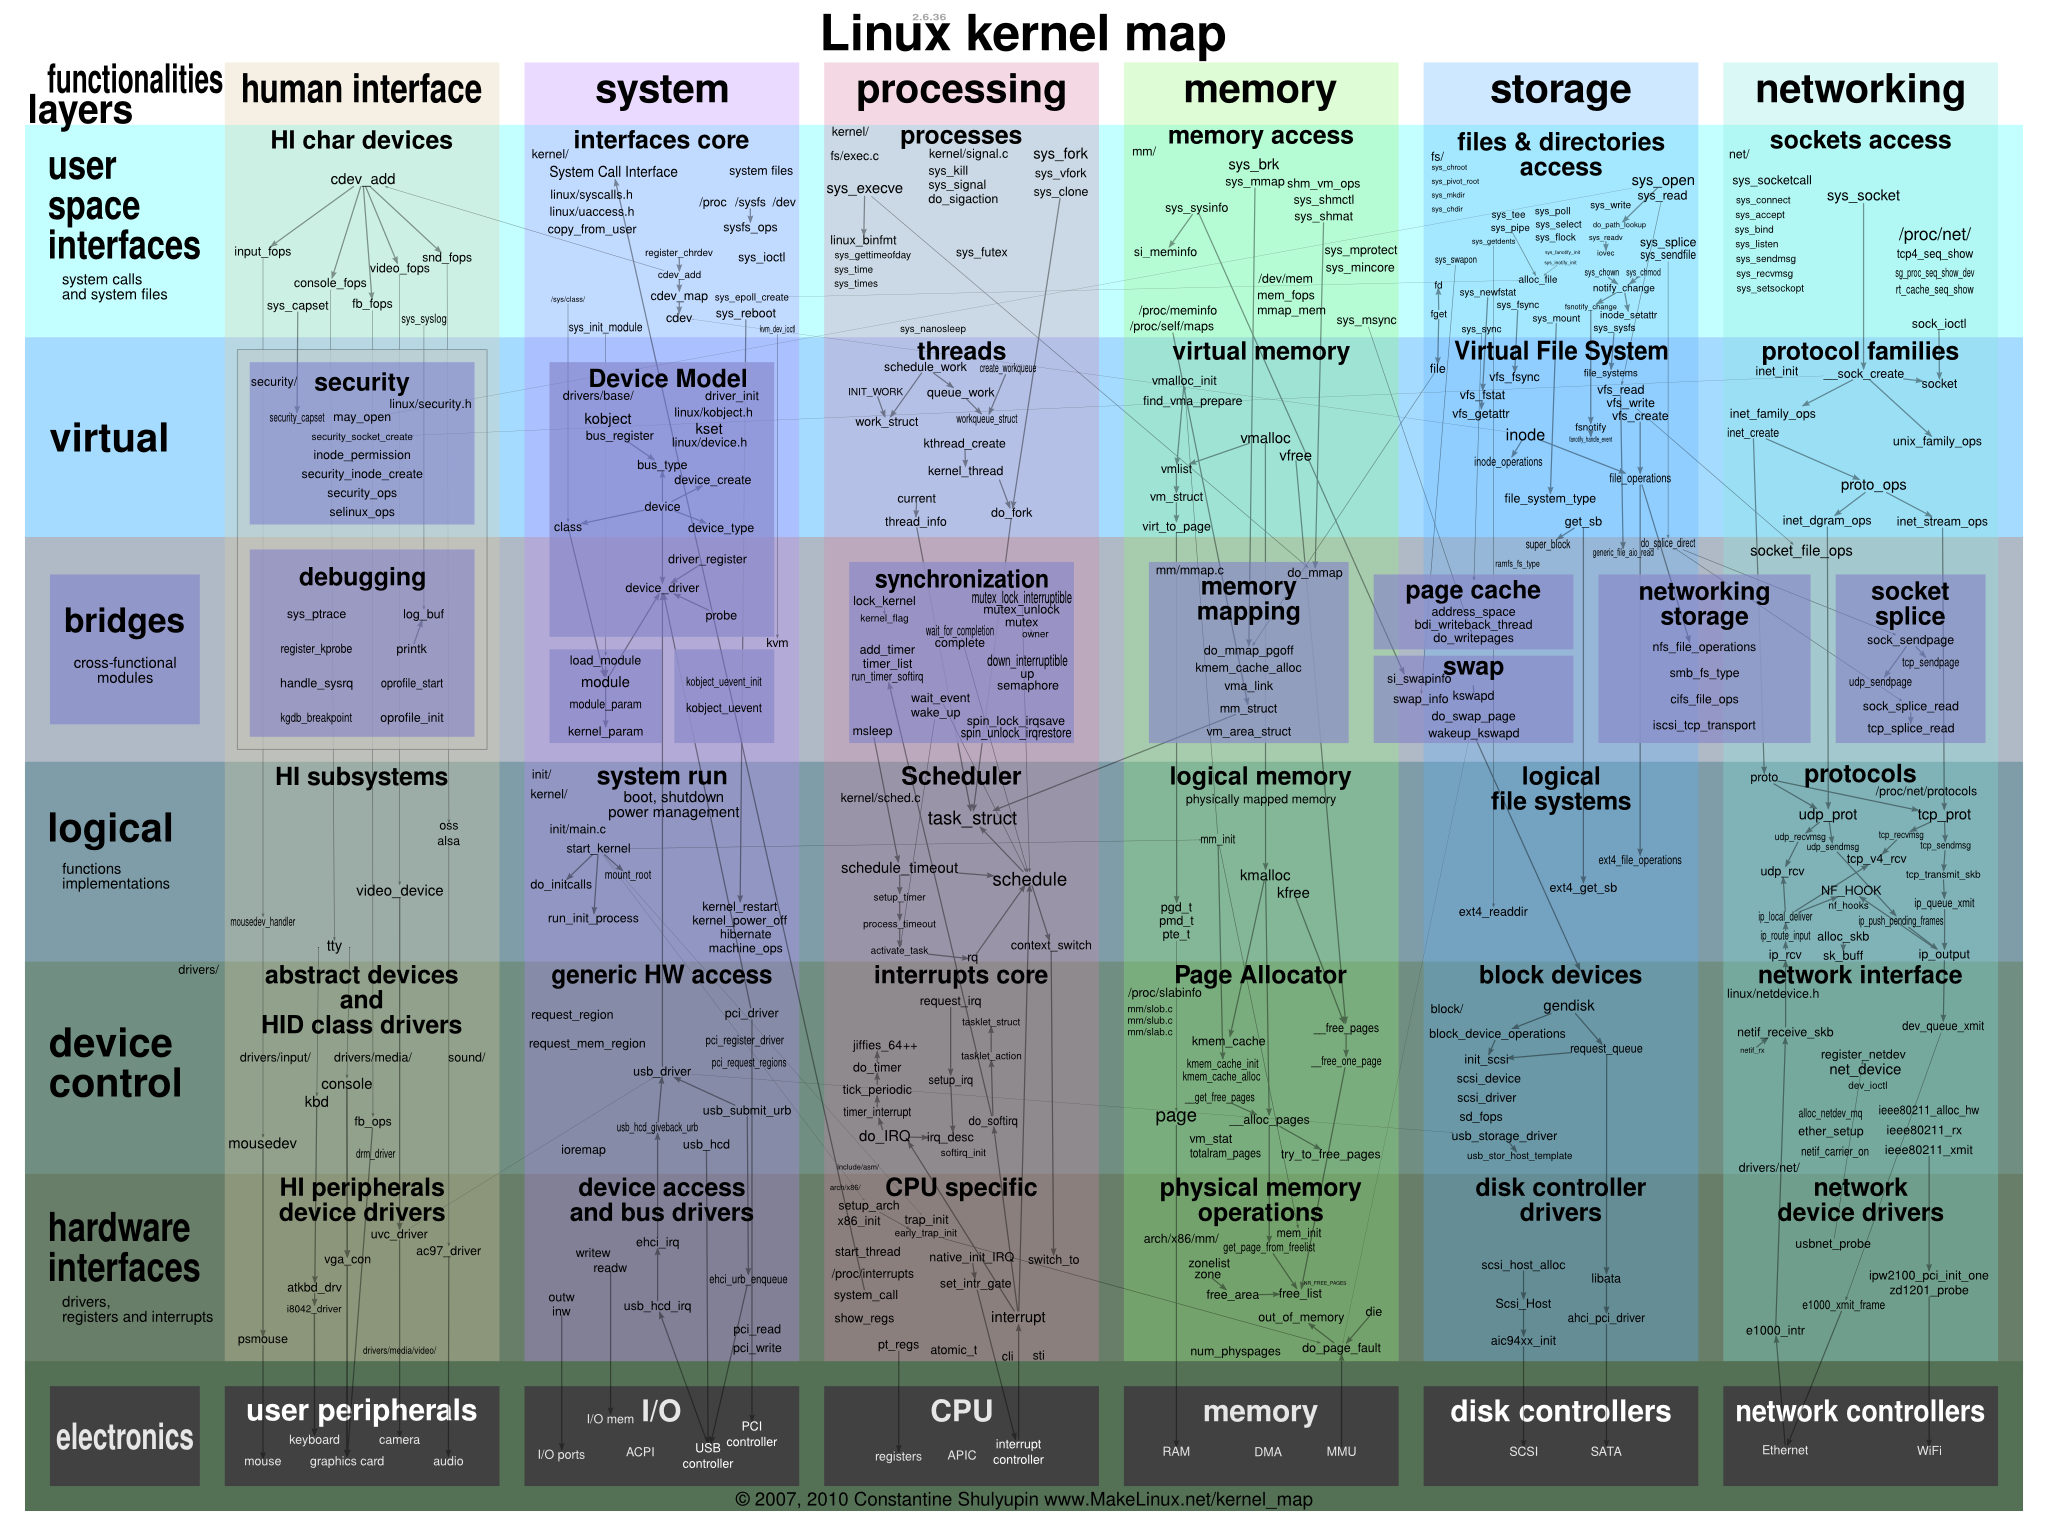 IOS XE sits on Linux kernel -How much of the Linux kernel is